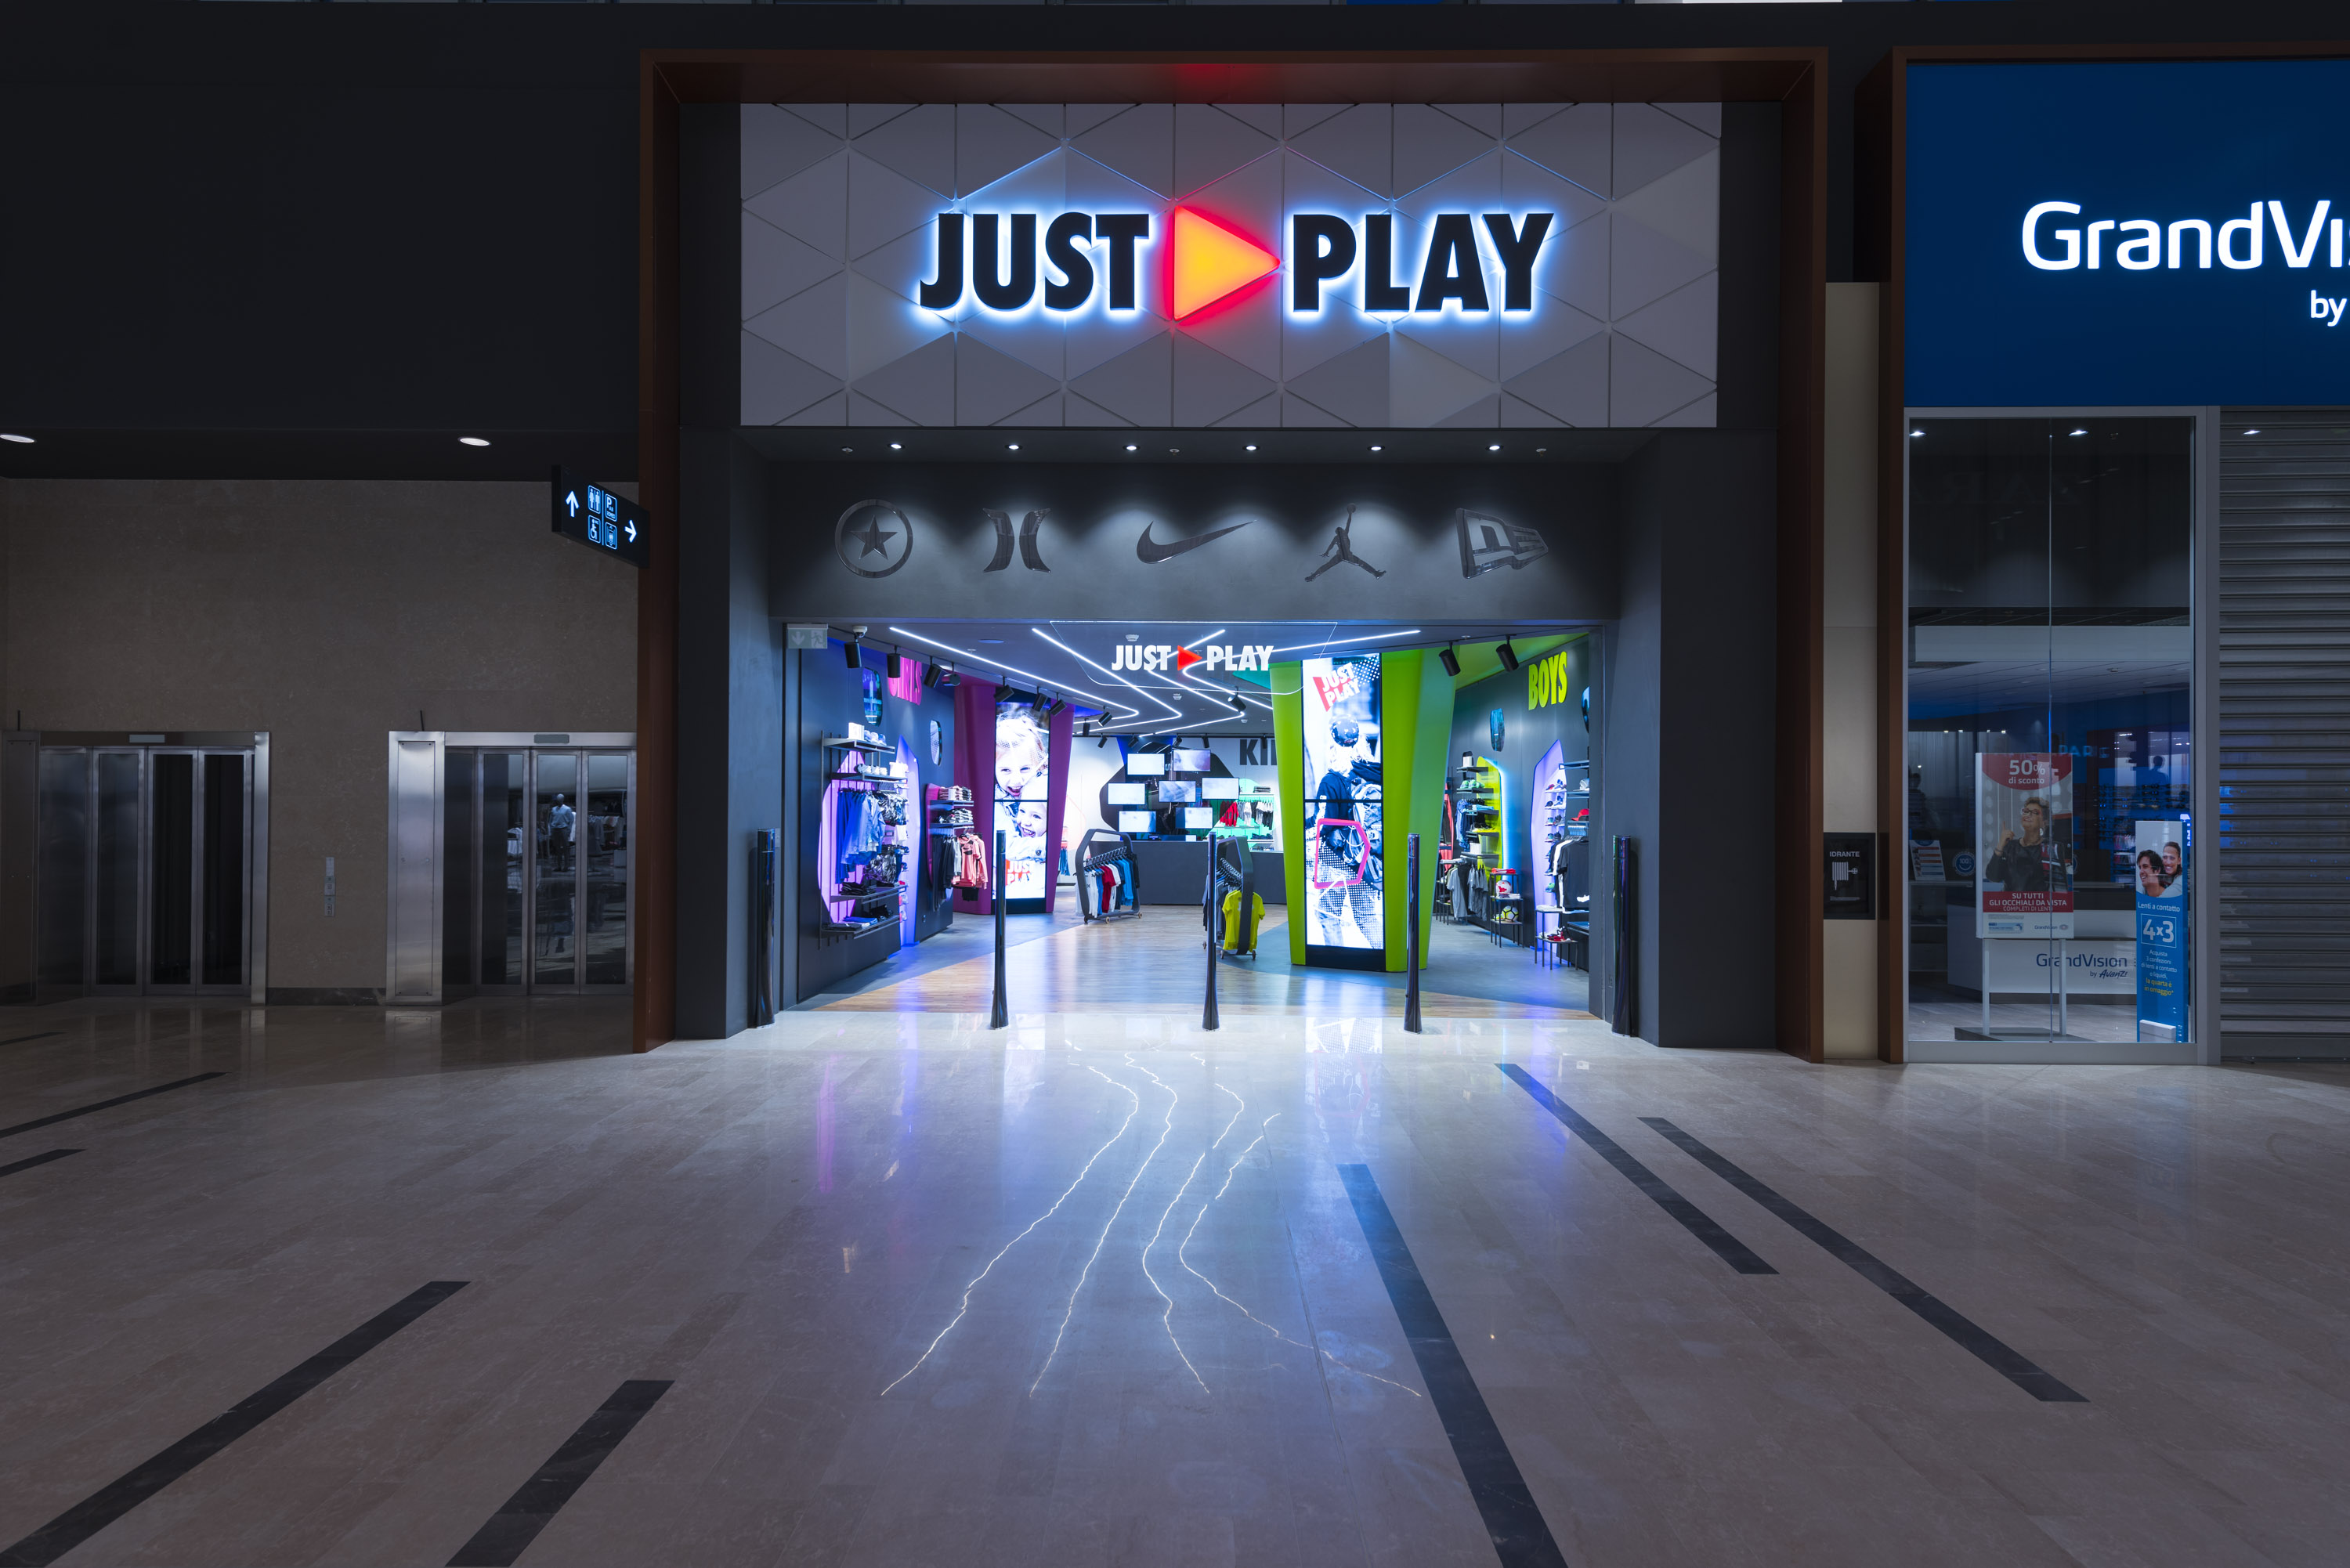 Just Play ingresso